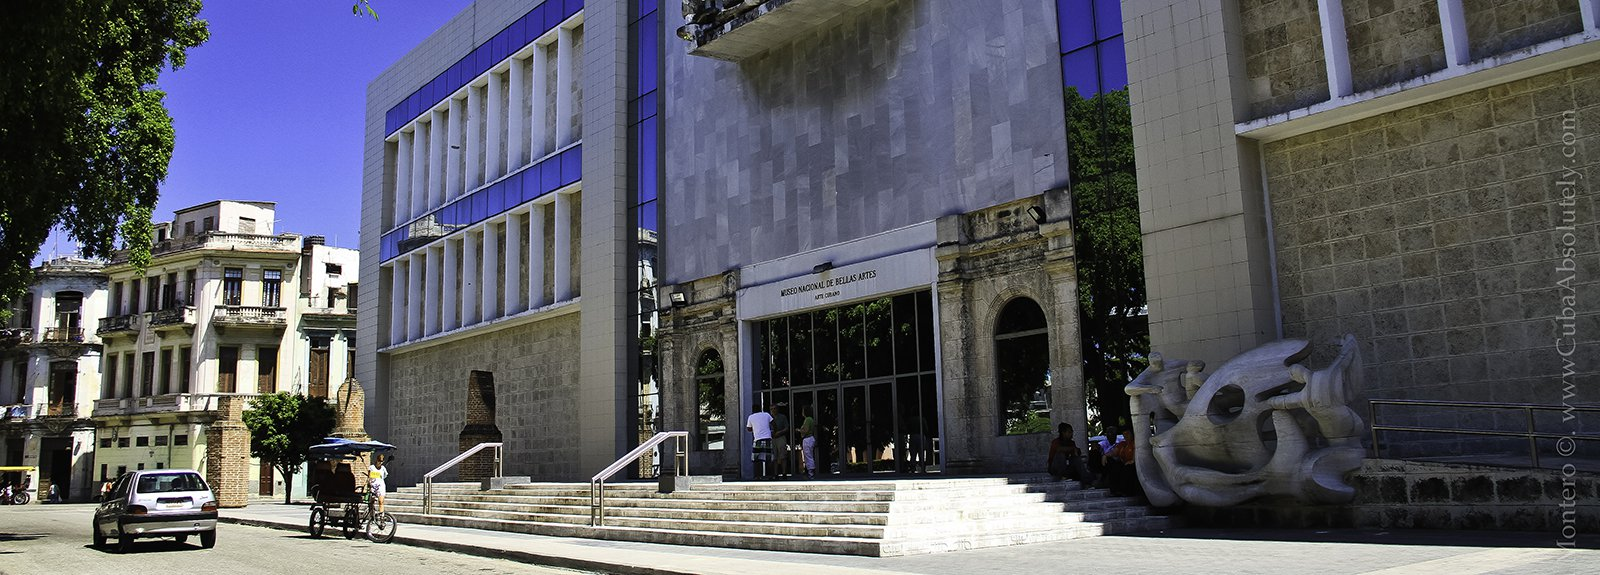 Entrance to the museum of cuban art